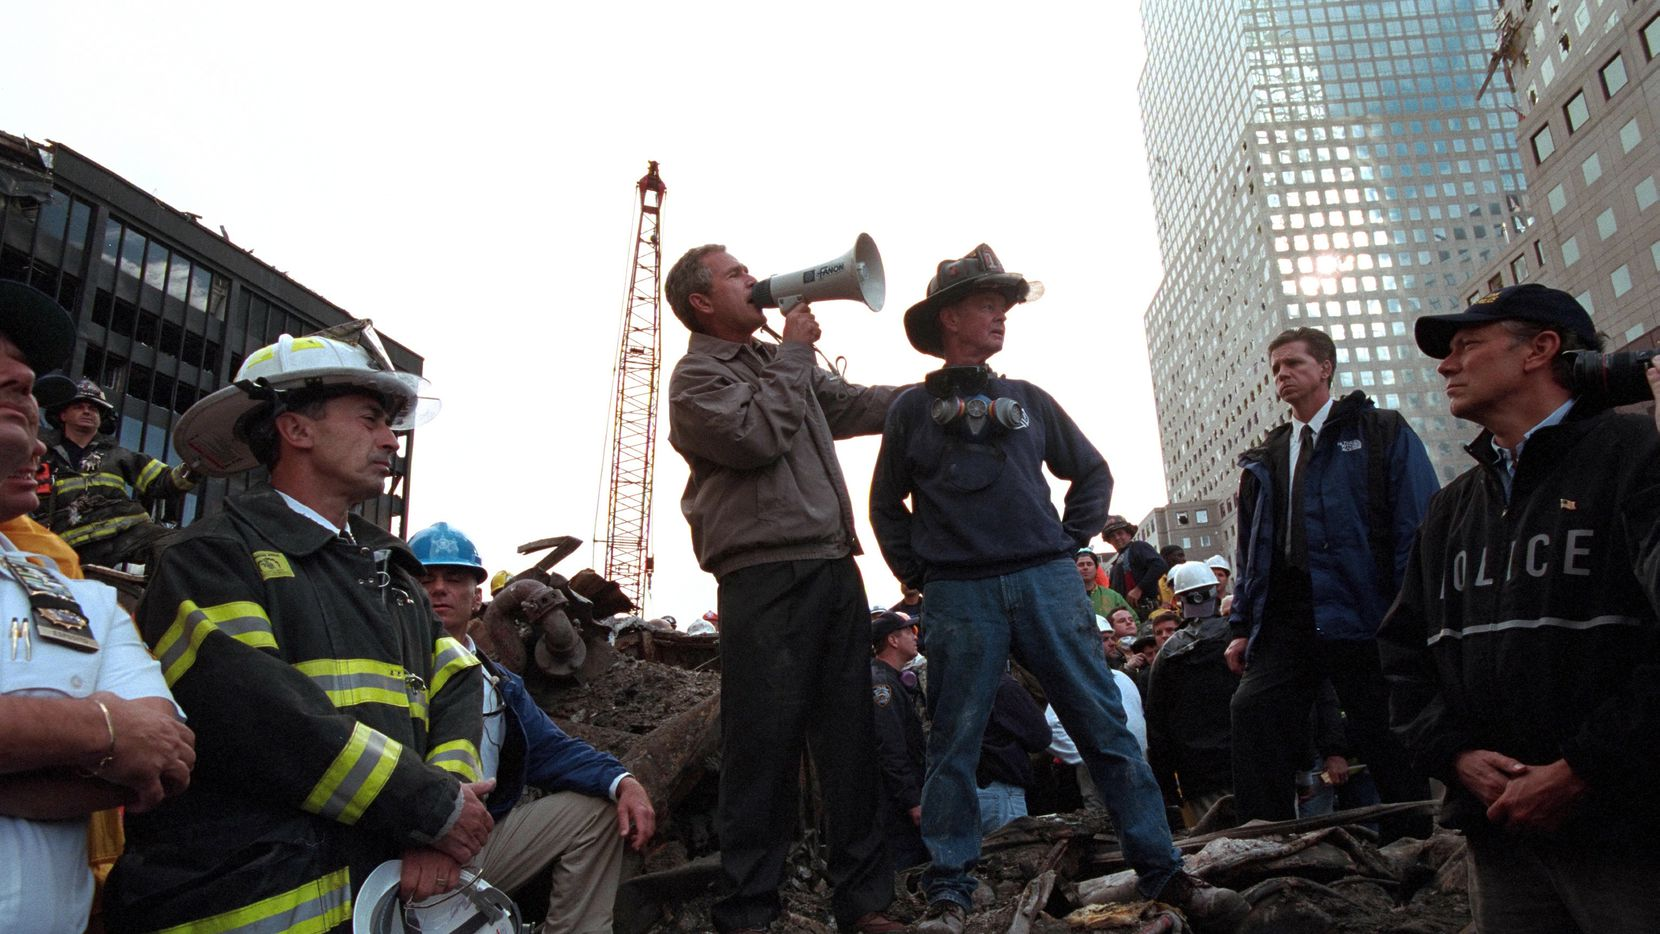 Standing atop rubble with retired New York City firefighter Bob Beckwith, Former President George W Bush rallies firefighters and rescue workers during an impromptu speech at the site of the collapsed World Trade Center in New York City, N.Y., Sept. 14, 2001.